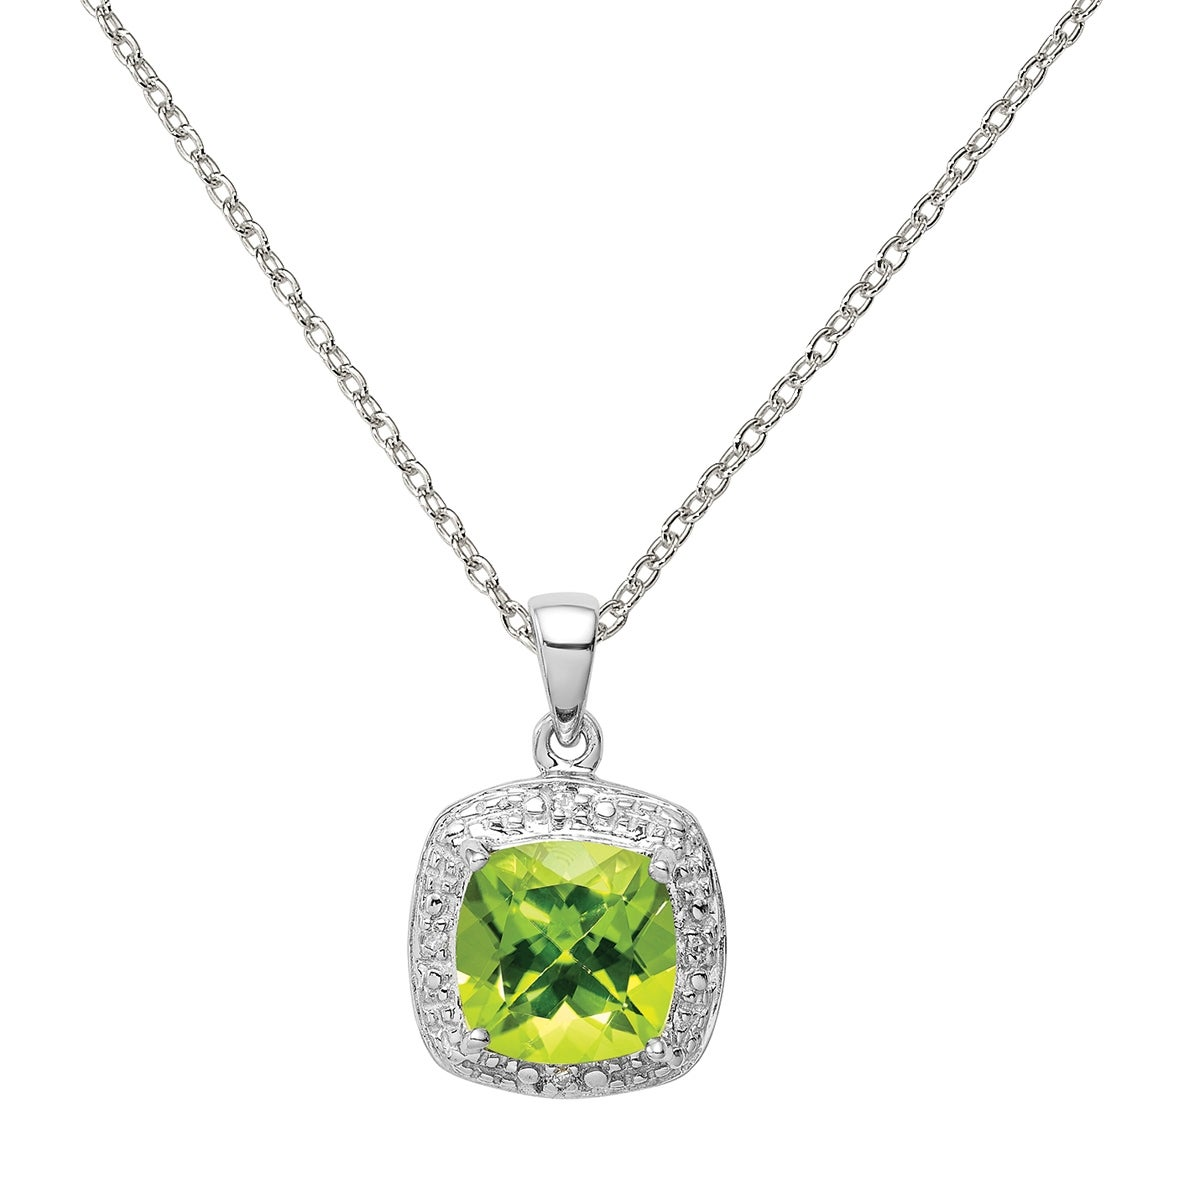 Sterling Silver Rhodium-plated SD State Pendant with chain